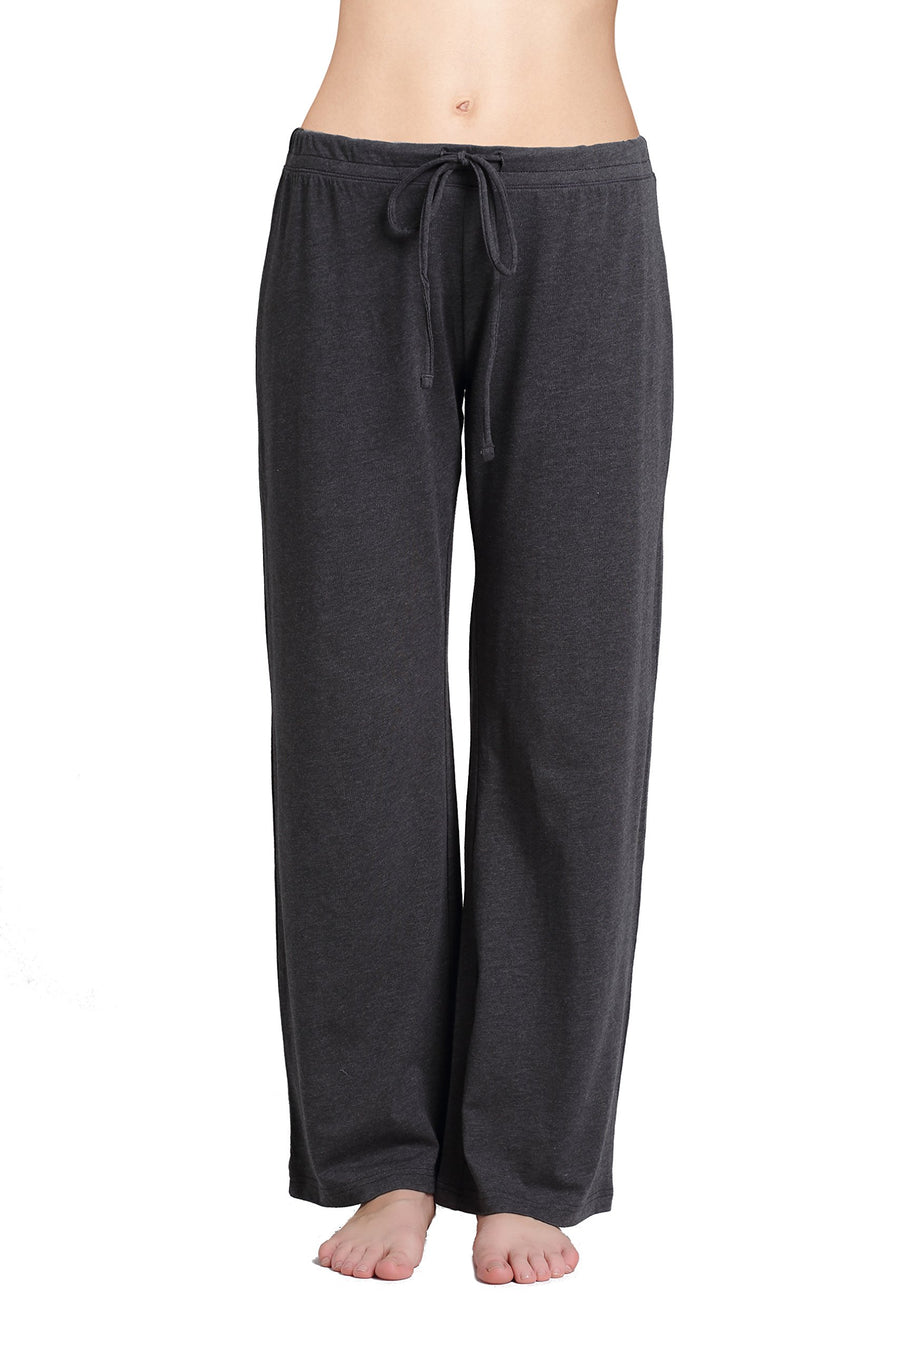 CYZ Women's Stretch Cotton Knit Pajama Pants